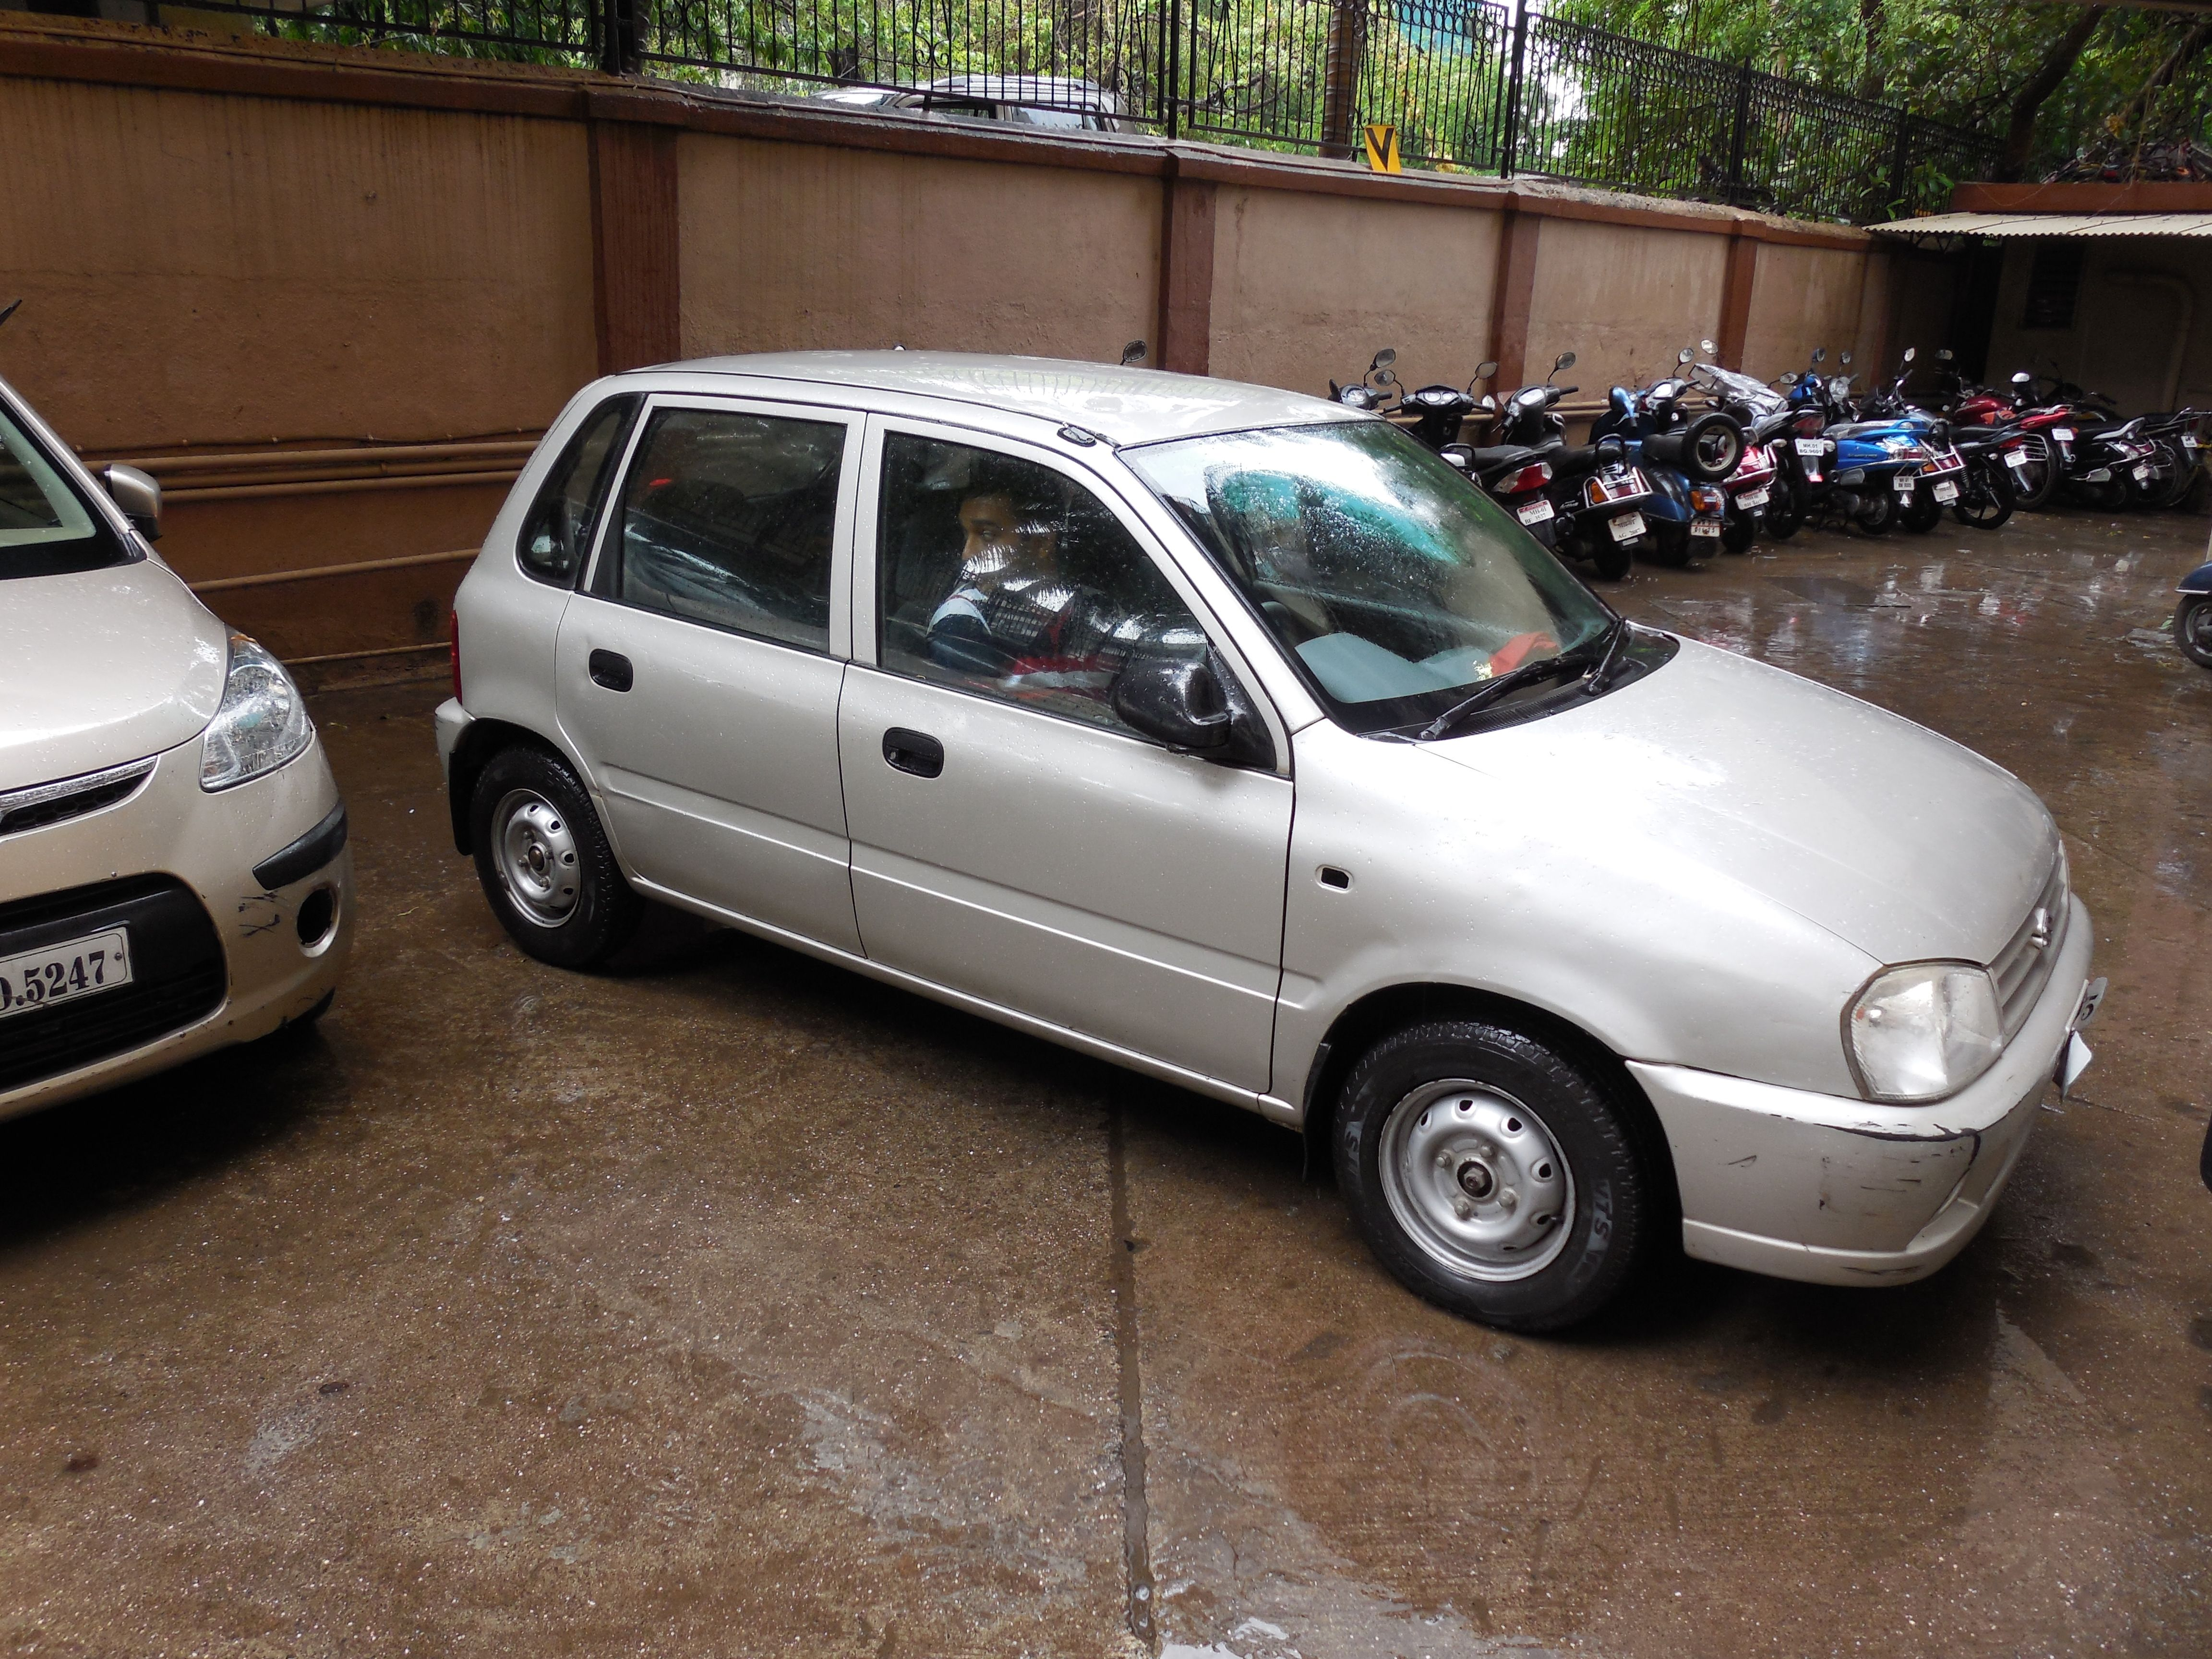 Maruti Zen 2005 model for sale in Mumbai. Check out the